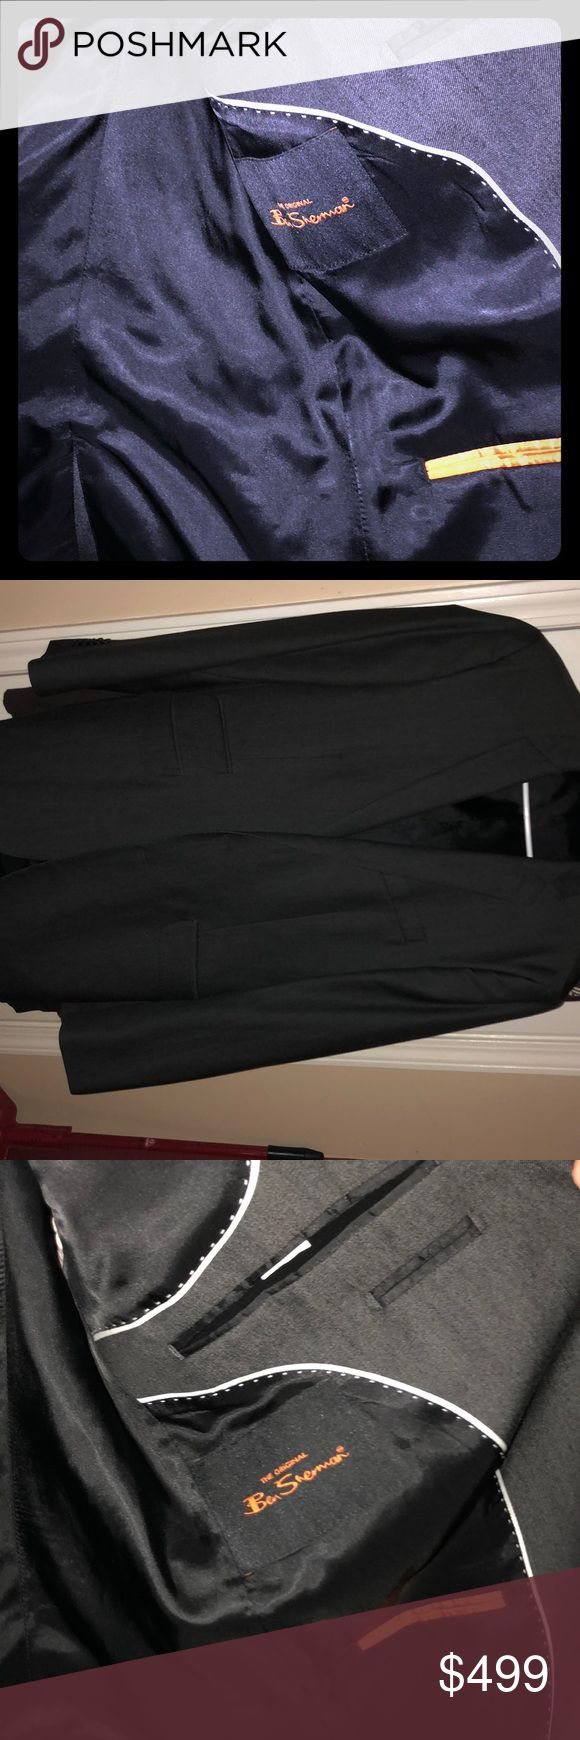 "Ben Sherman suit tailored 42L jacket with 32"" pant nwot ben Sherman men's suit jacket and pants perfect condition Ben Sherman Suits & Blazers Suits"